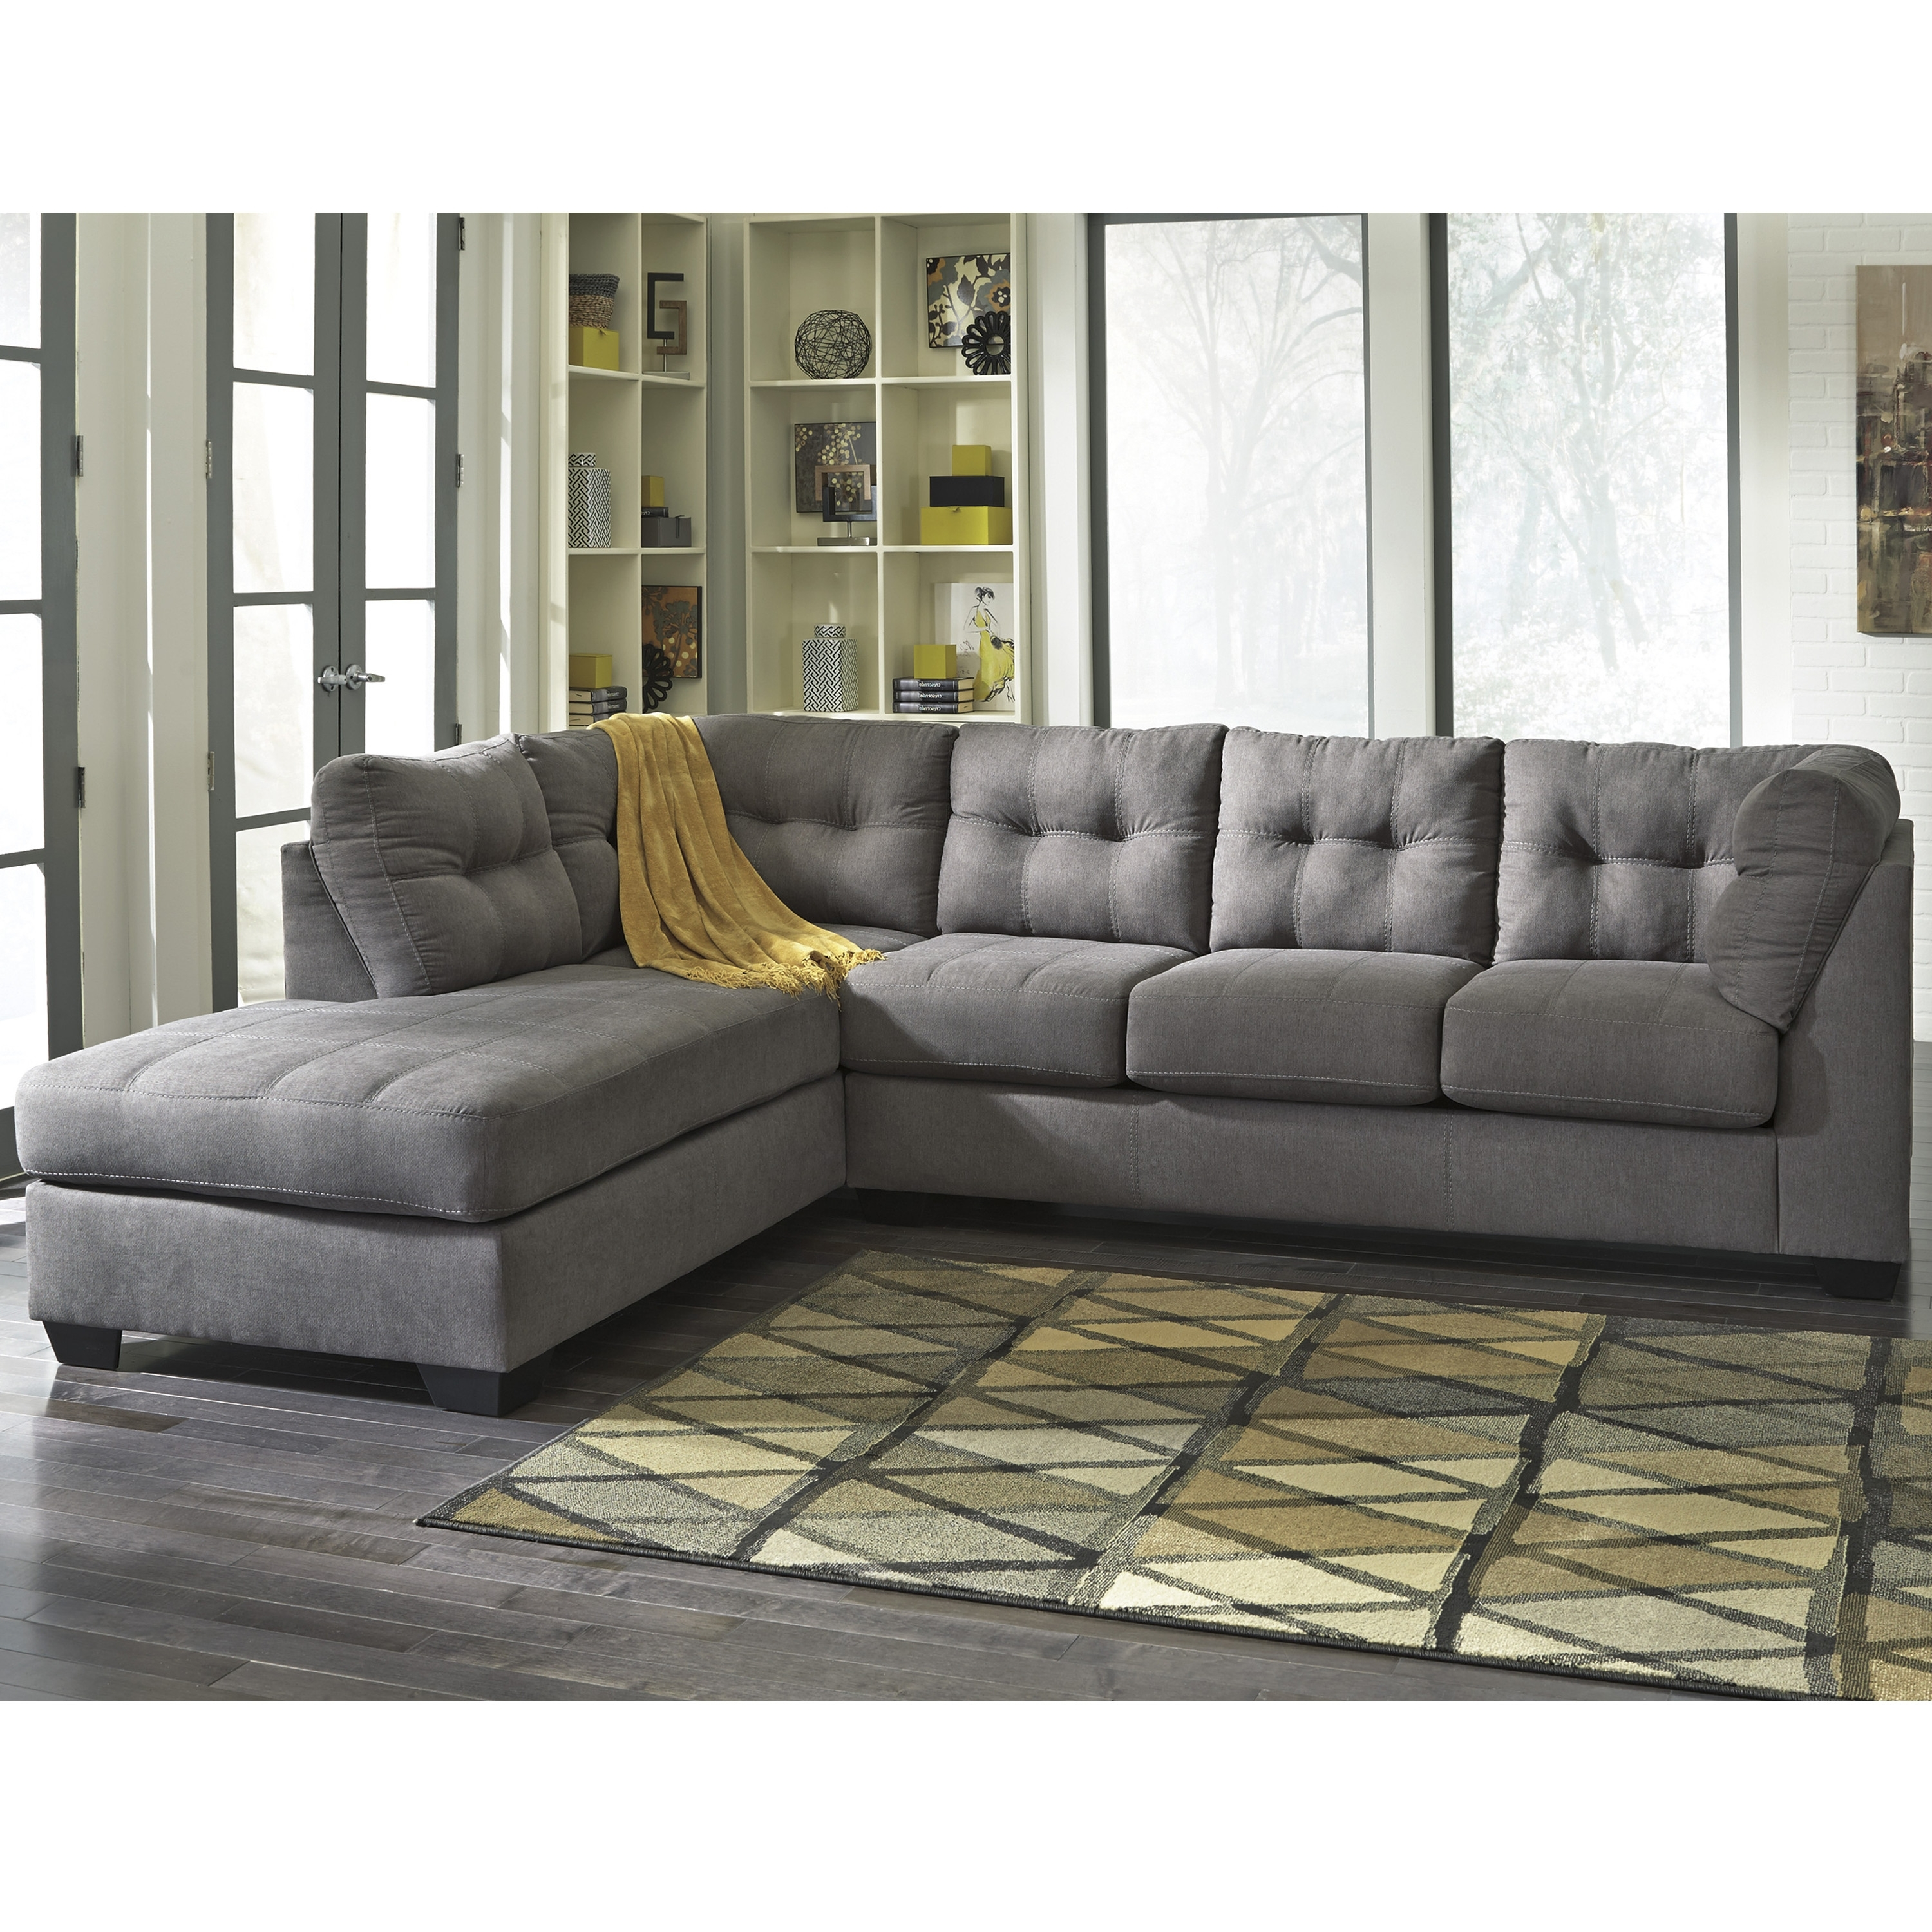 Luxury Sectional Sofas Portland 51 For Your Leather And Cloth For Portland Sectional Sofas (View 3 of 10)